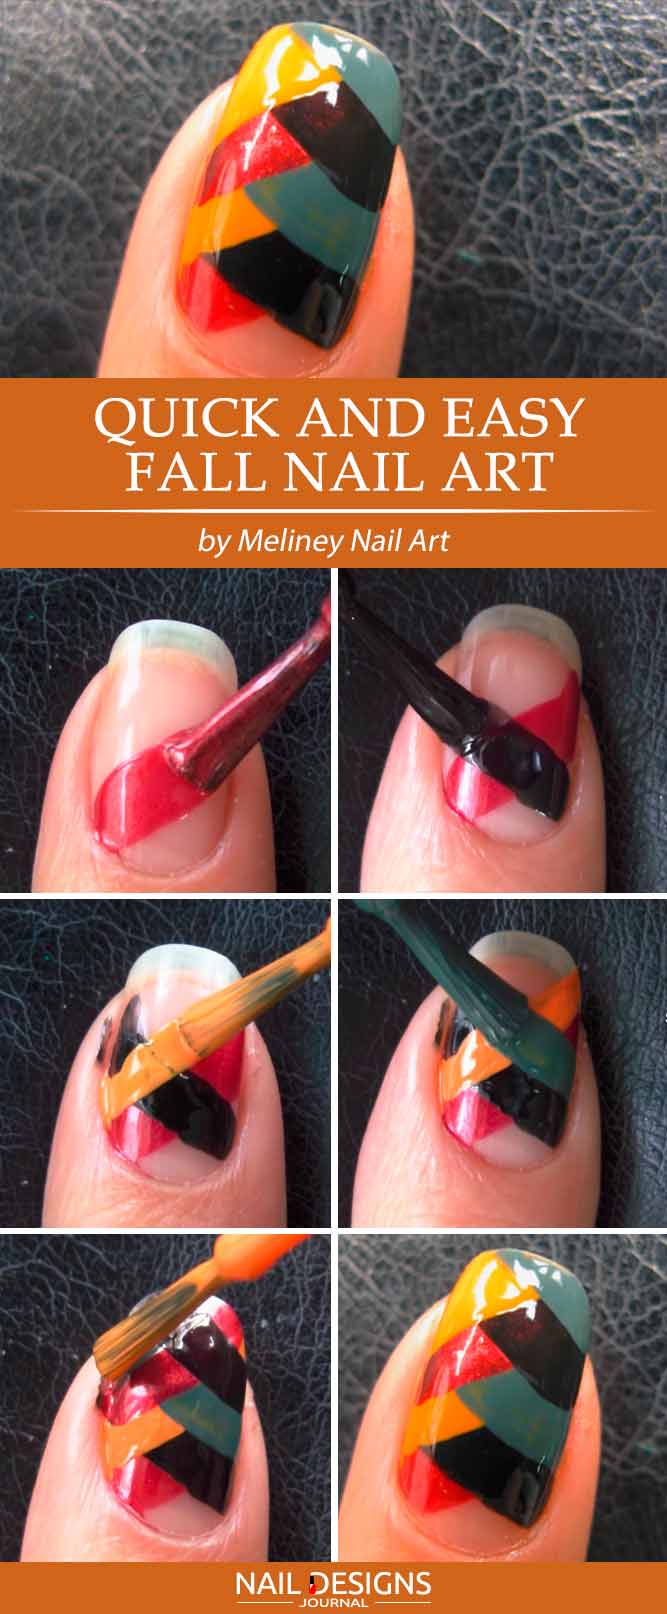 Fall Fishtale Nail Art #fallnailart #simplenaildesigns